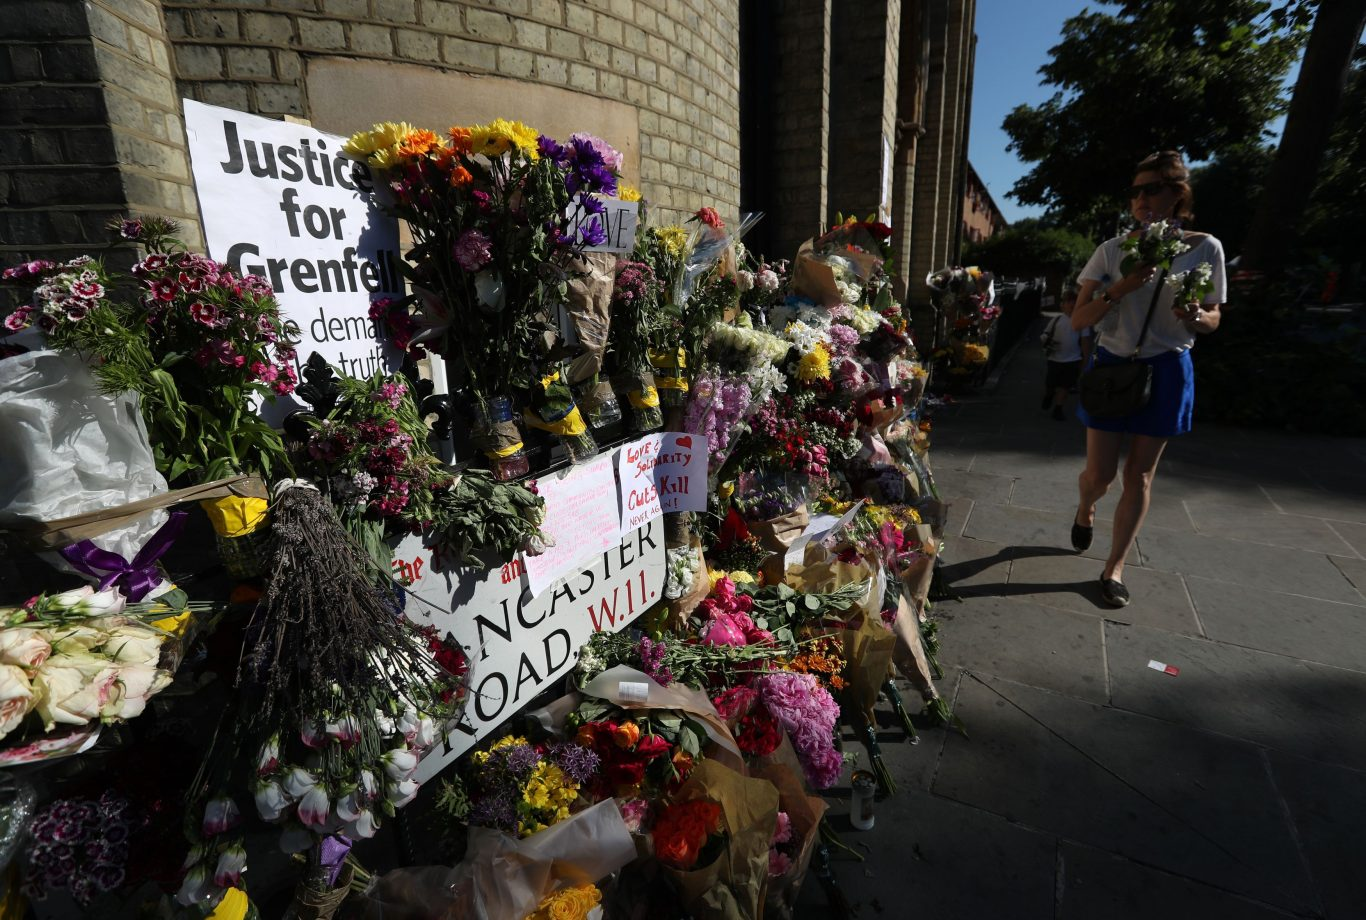 Police raise London tower fire death toll to 79